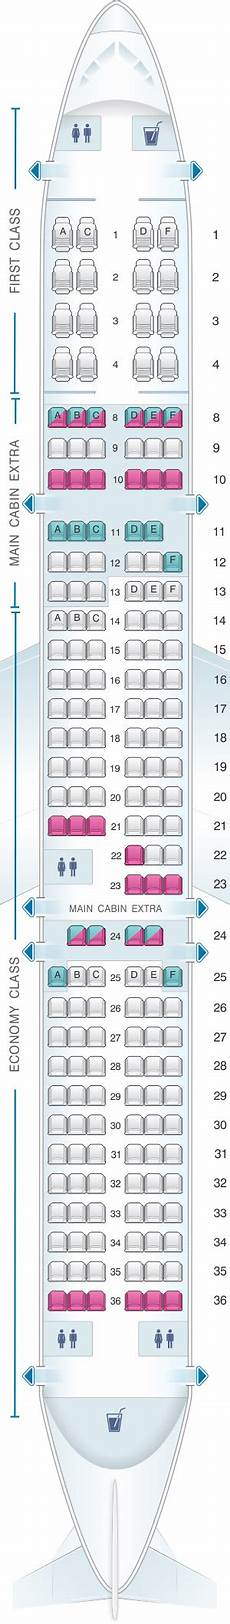 Airbus A320neo Seating Chart Seat Map American Airlines Airbus A321 181pax Seatmaestro